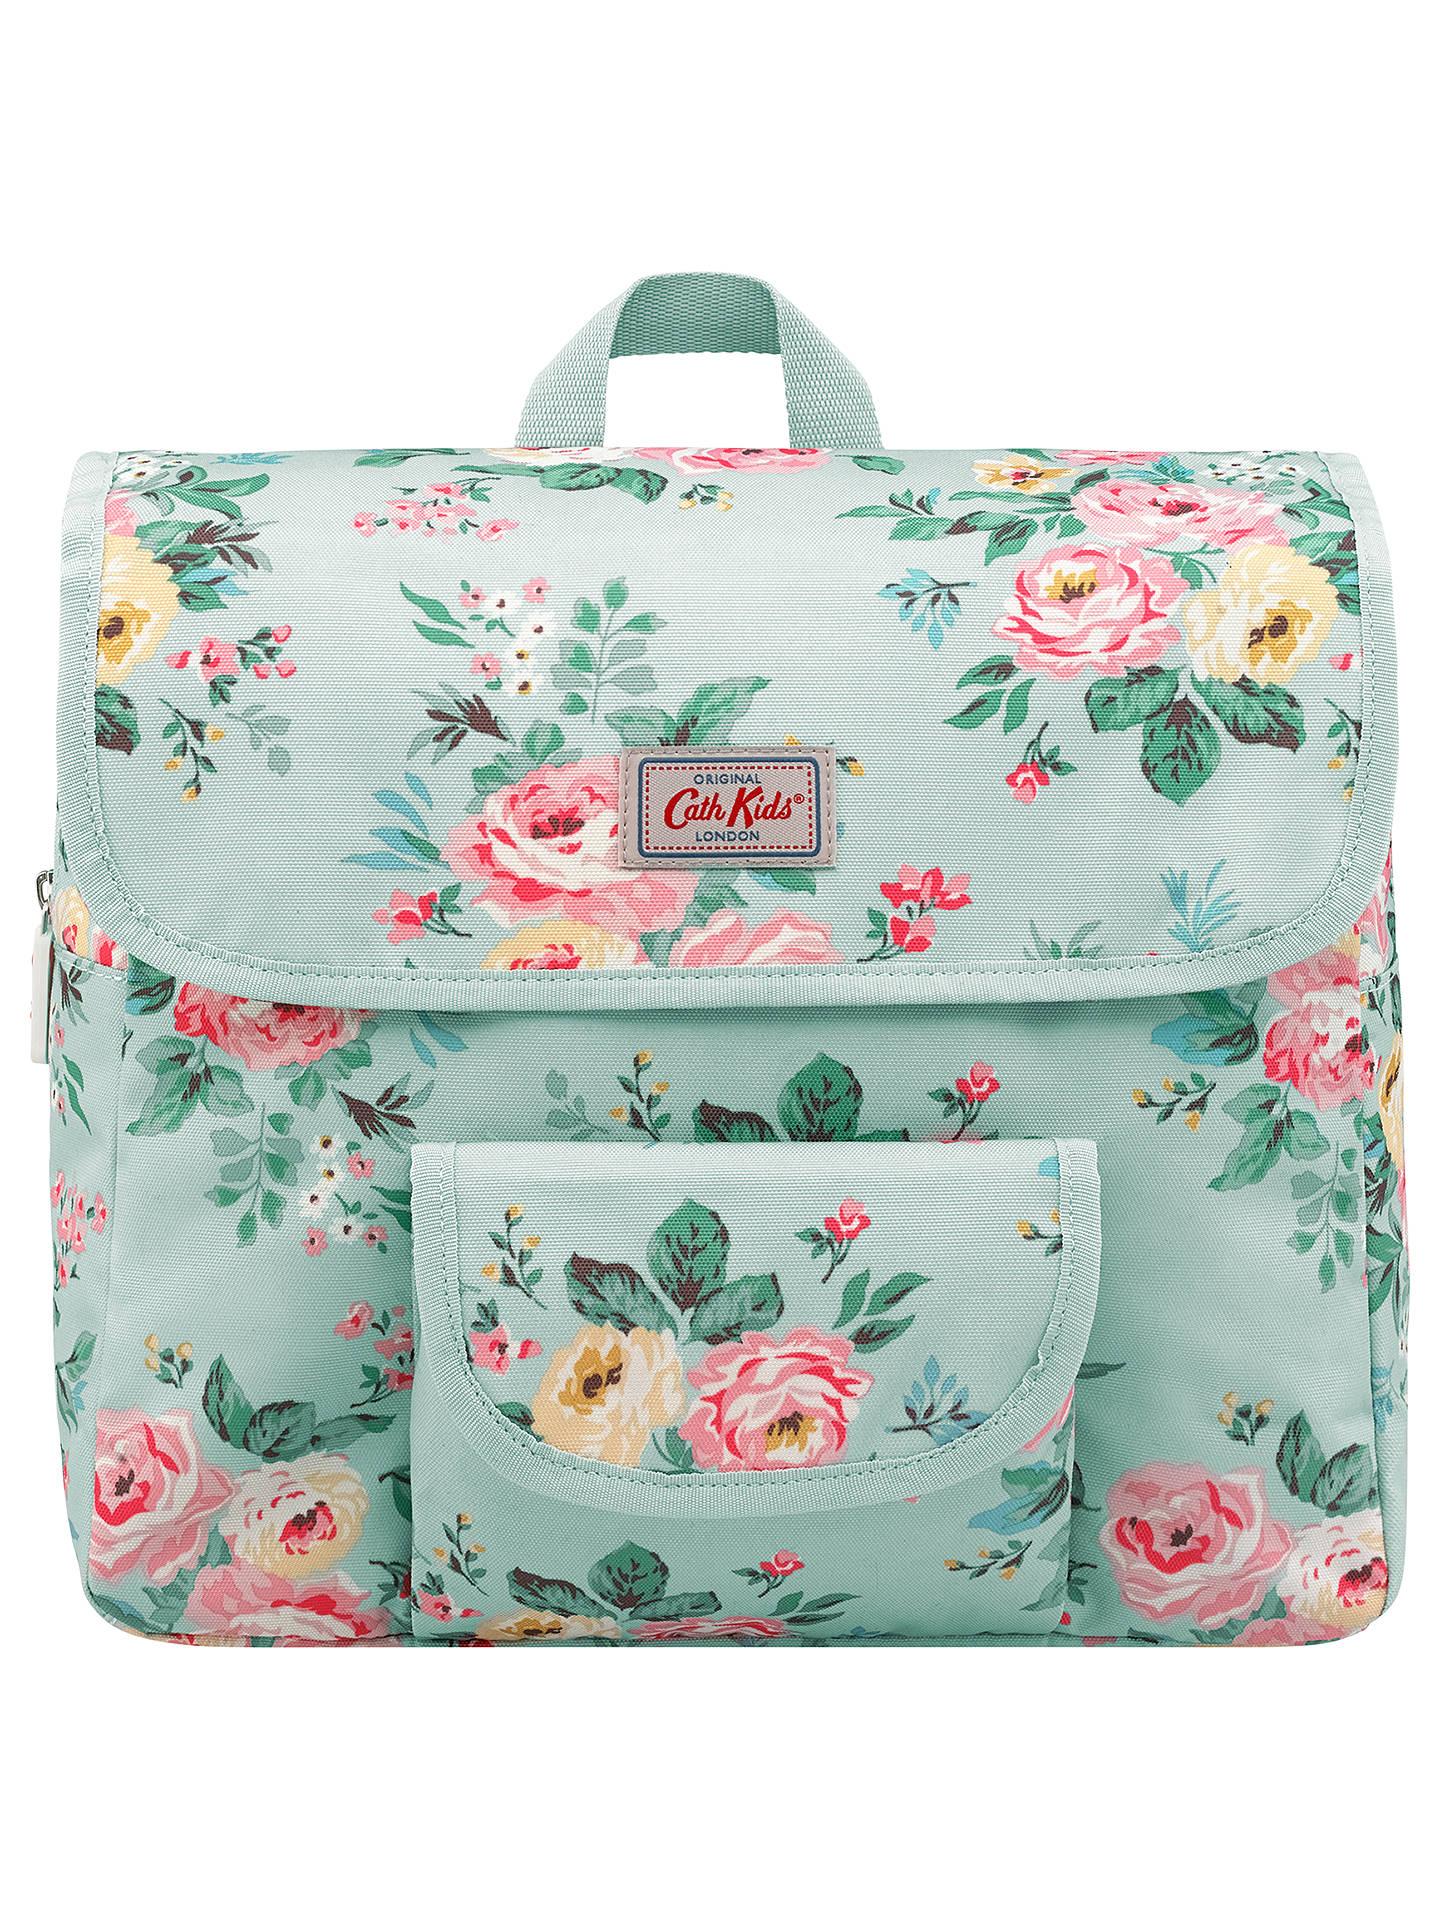 7eb2e973b6 Buy Cath Kids Children s Vintage Bunch Satchel Backpack